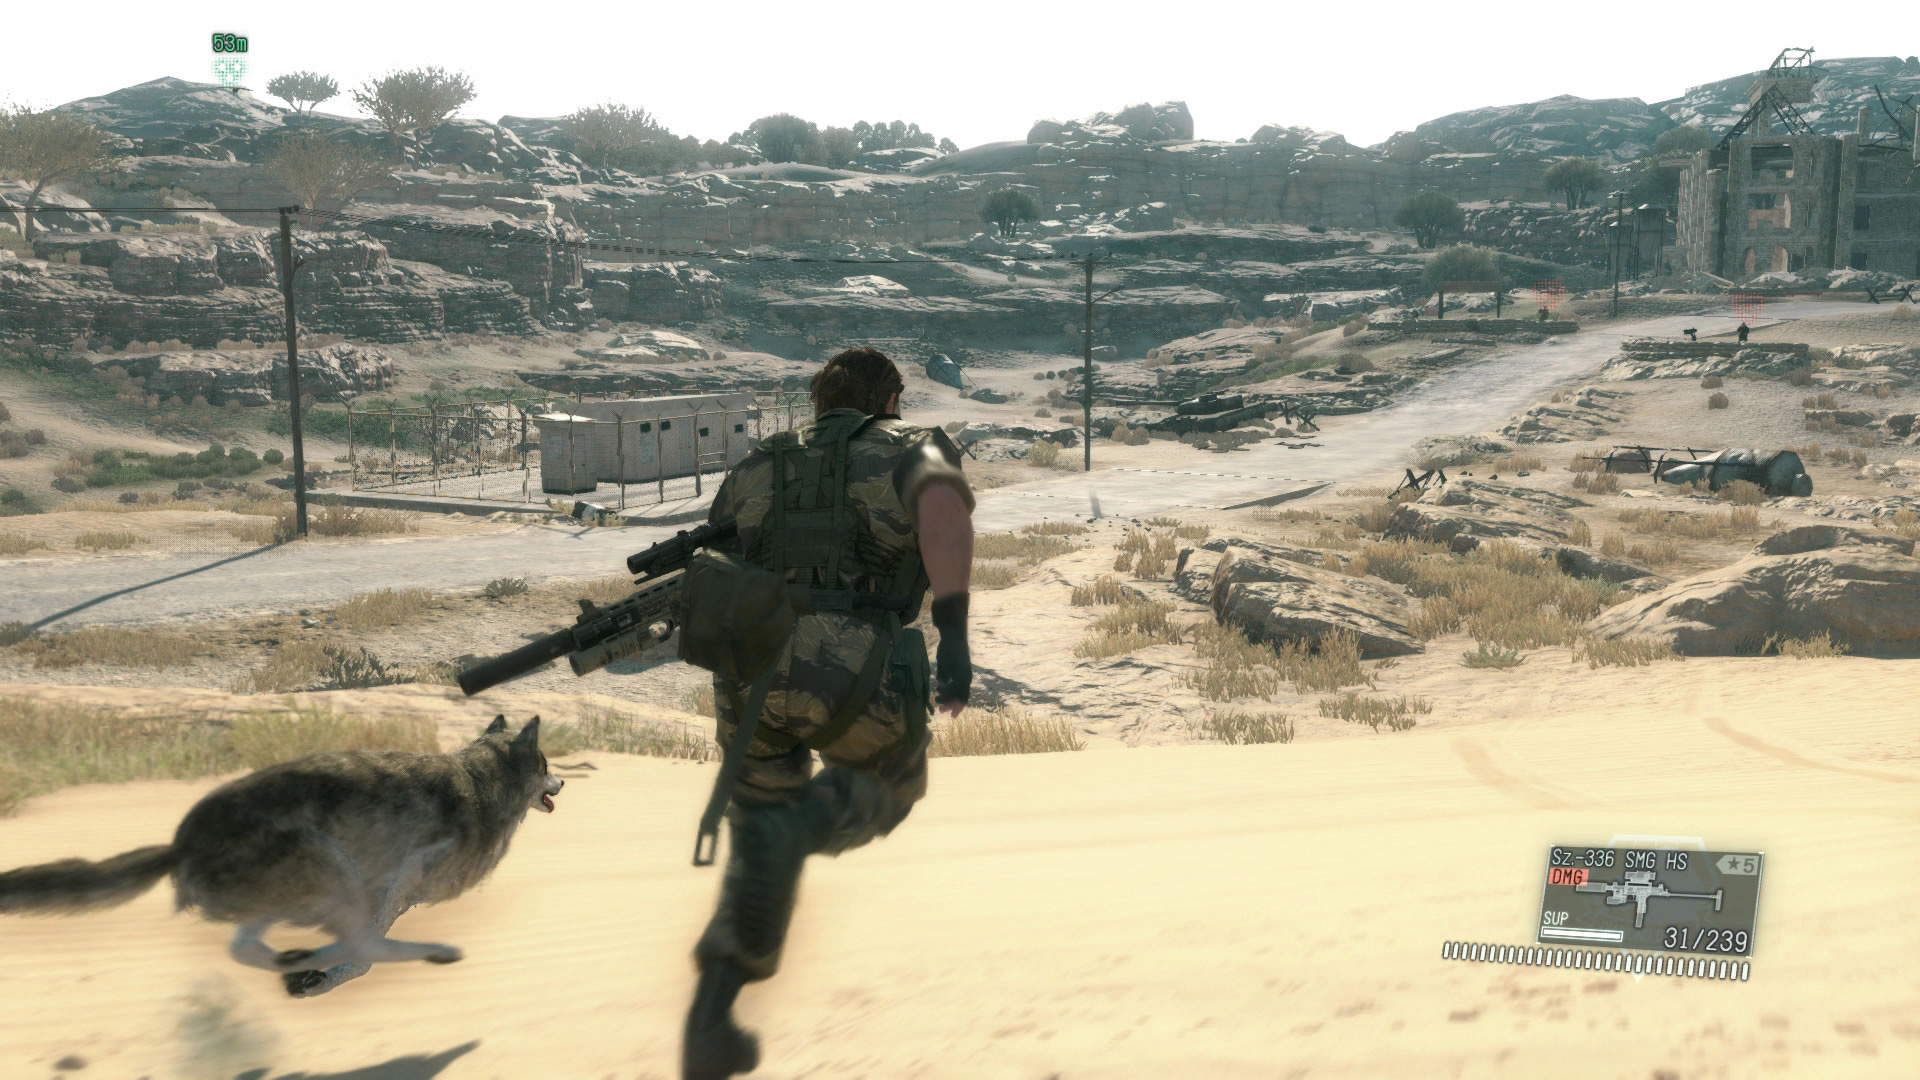 Metal-Gear-Solid-V-The-Phantom-Pain-E3-2015-Screen-Big-Boss-and-DD